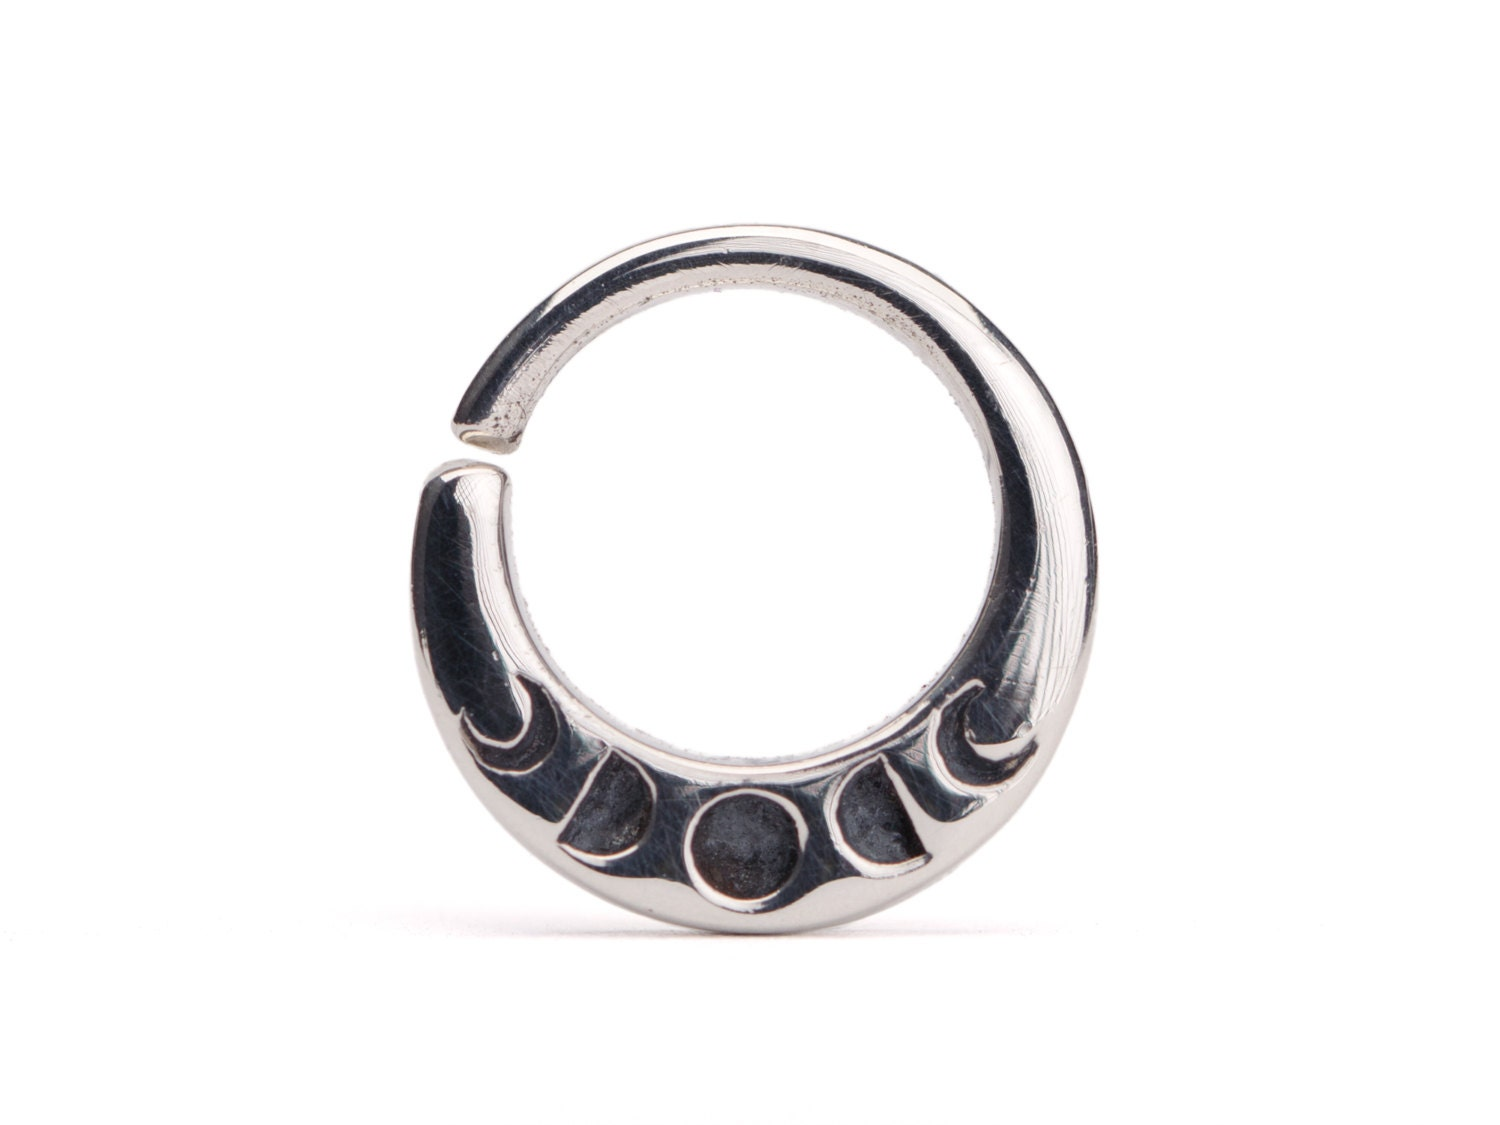 moon phases septum ring nose ring jewelry sterling silver